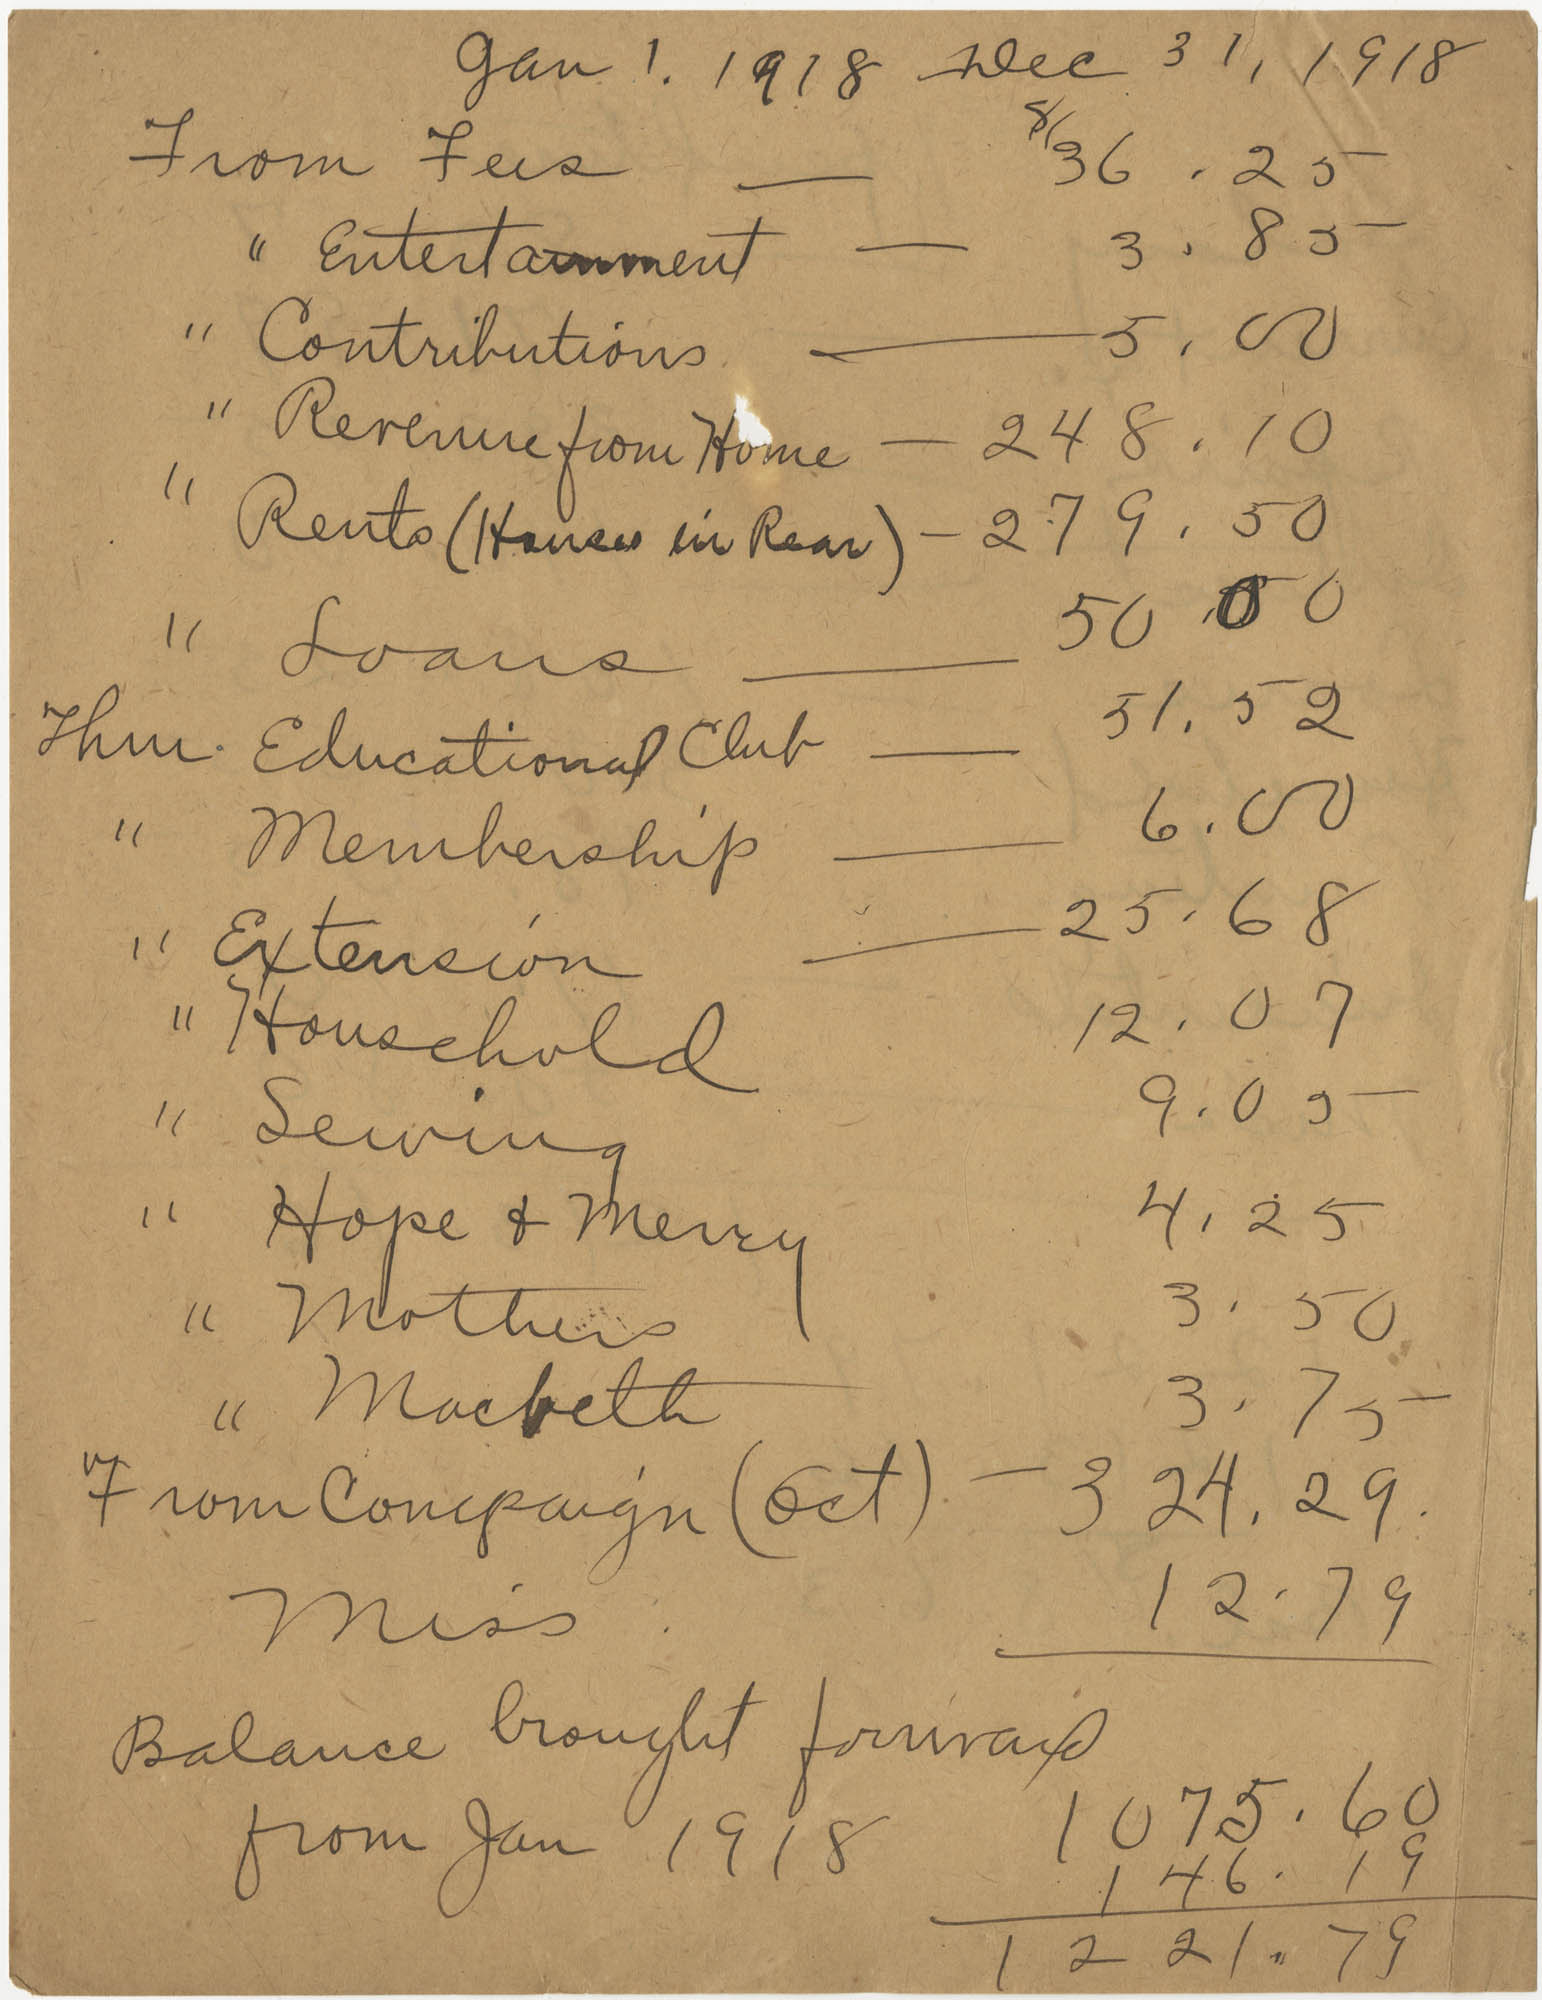 Y.W.C.A. Expenditures List, January 1, 1918 to December 31, 1918